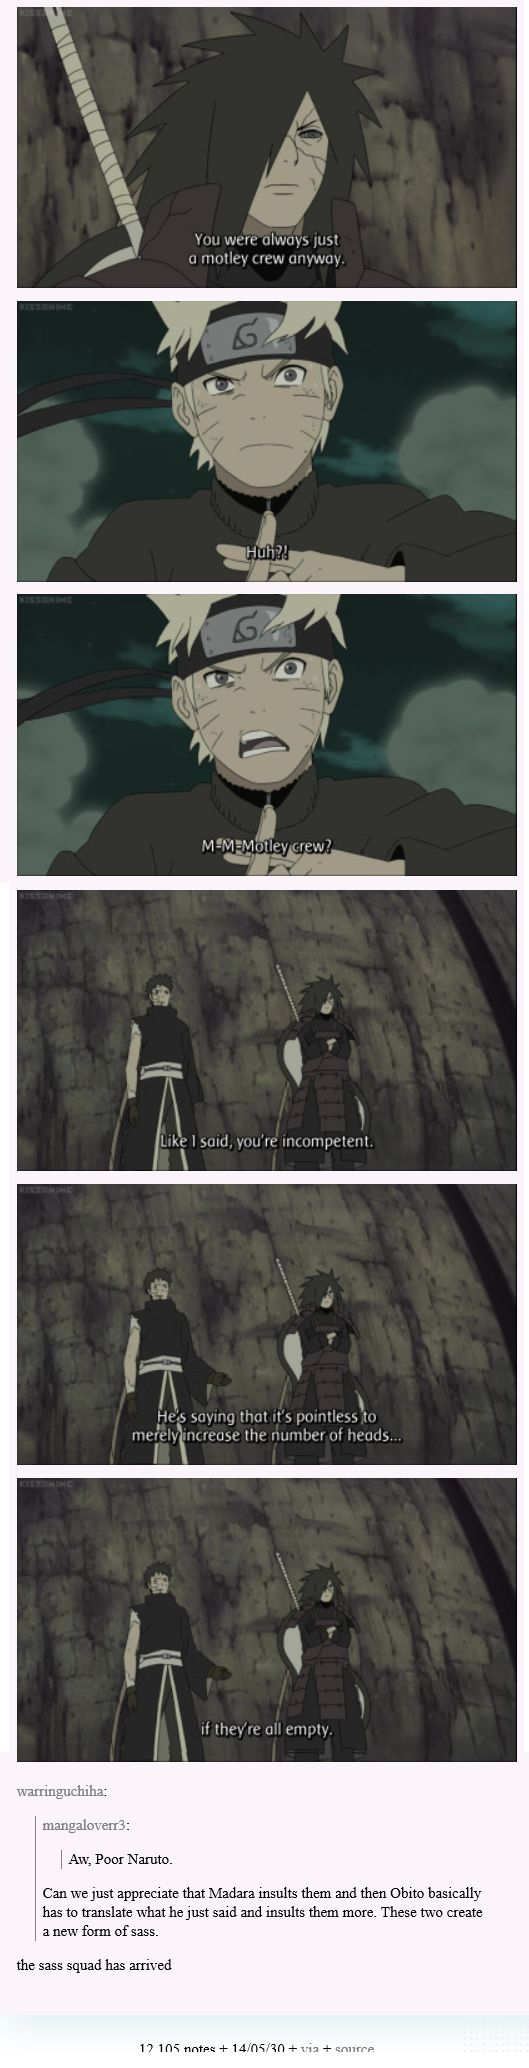 """<3 Naruto, Madara & Obito - """"Can we just appreciate that Madara insults them and then Obito basically has to translate what he just said and insults them more. These two create a new form of sass."""""""